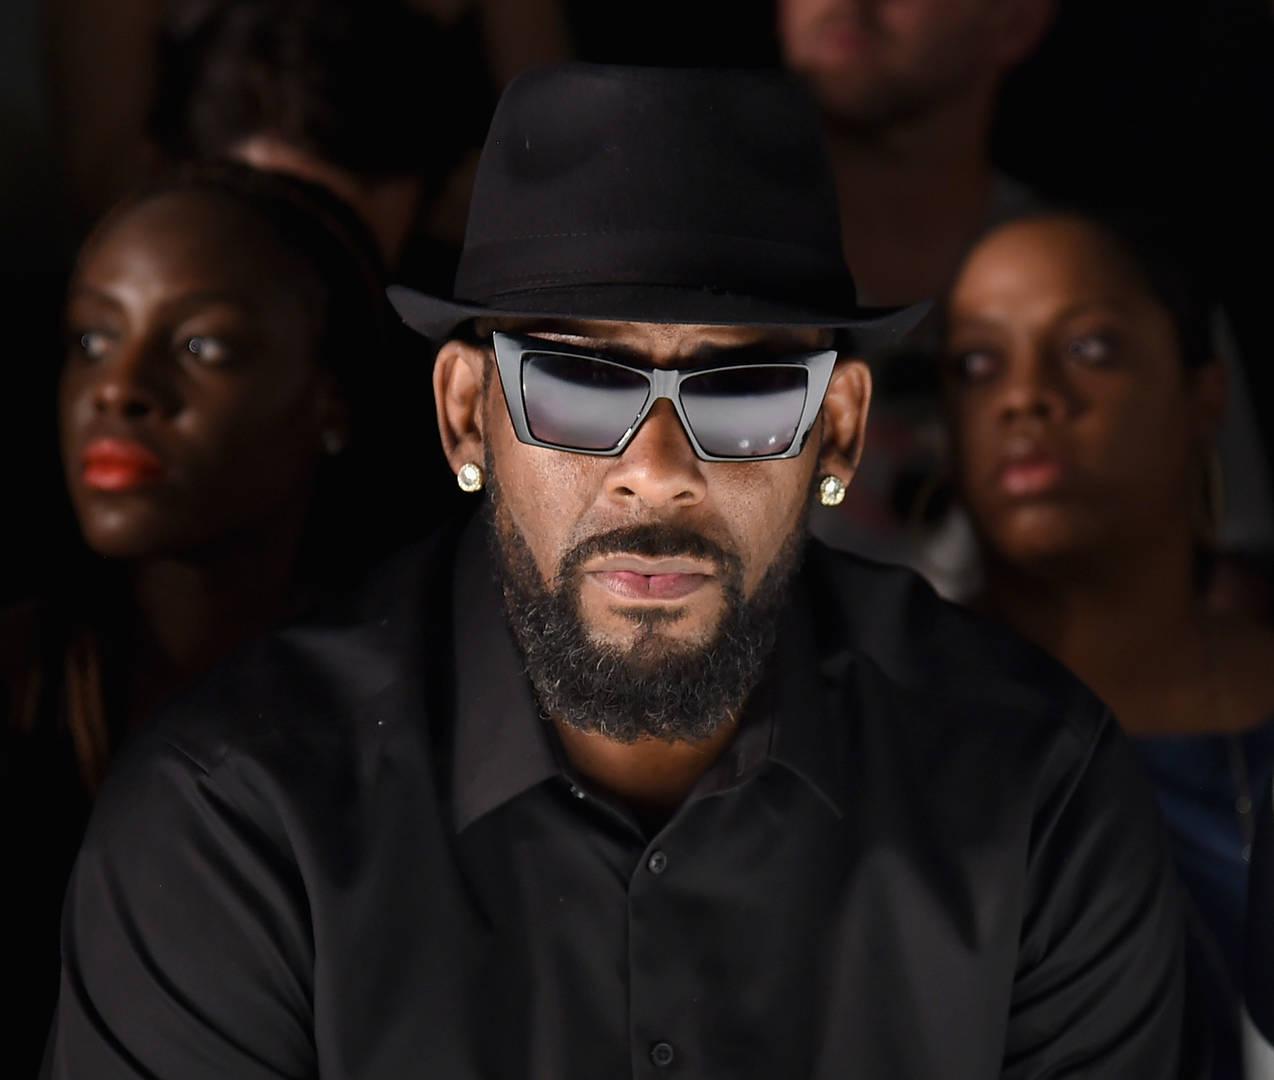 R Kelly charged with 10 counts of sexual abuse, reports say